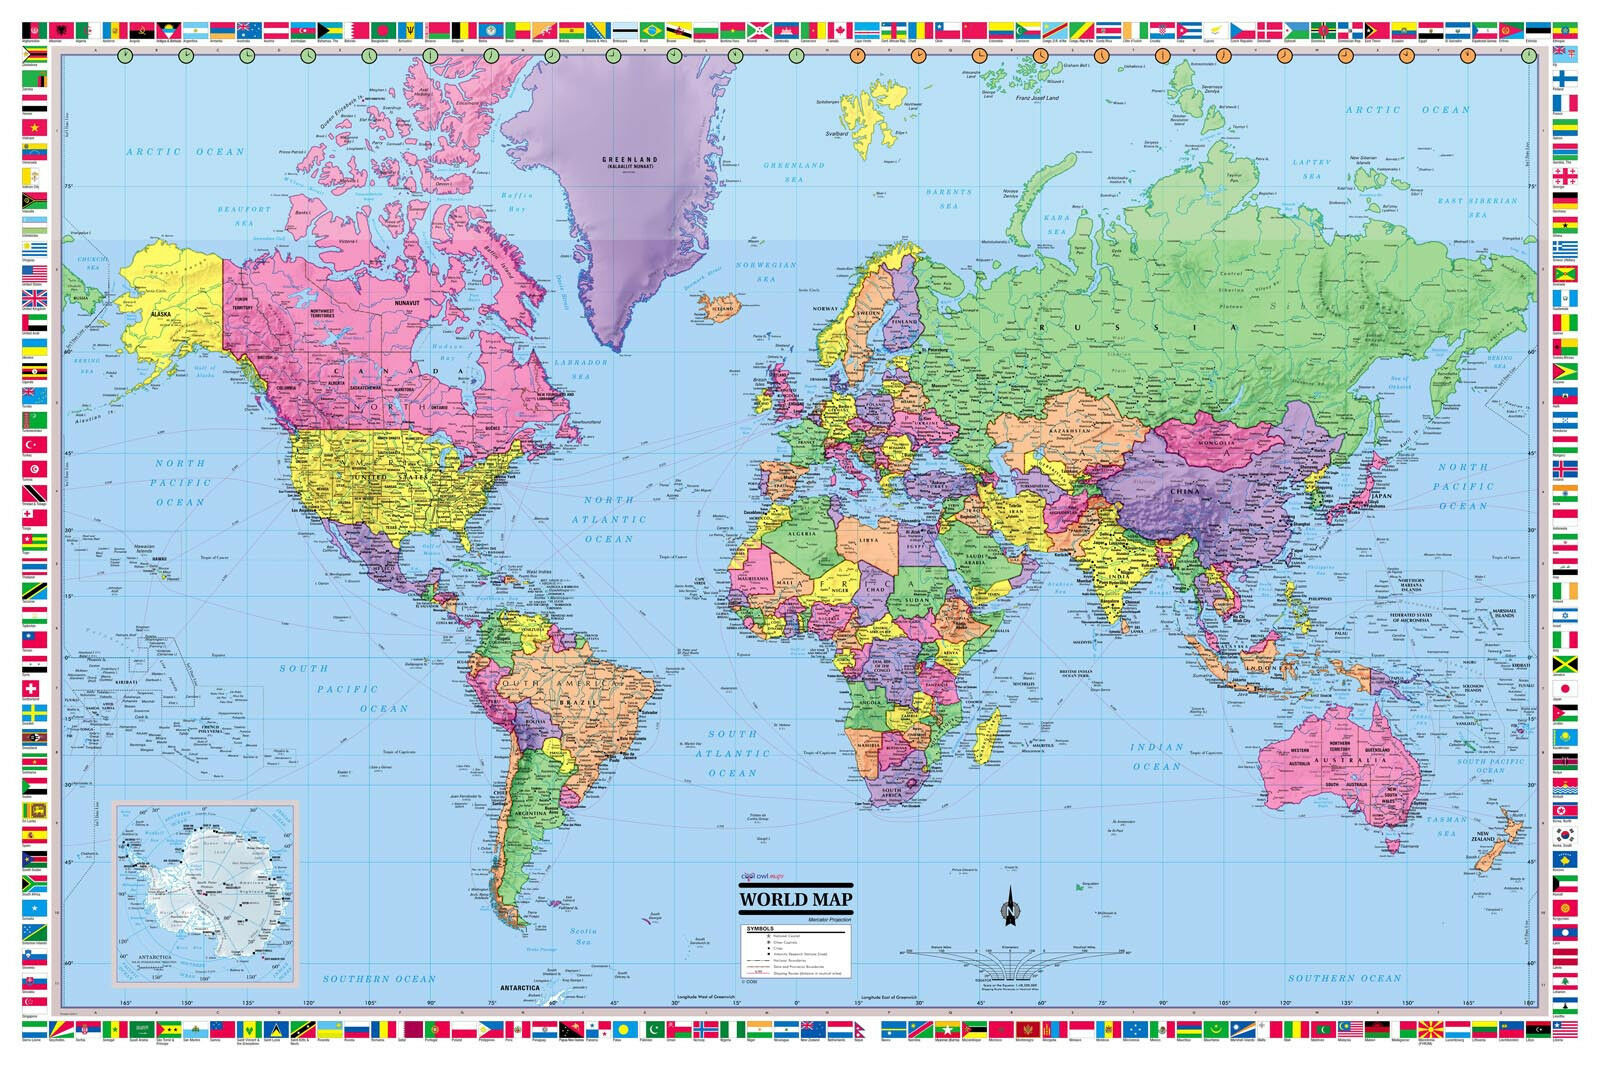 Coolowlmaps world wall map political with flags poster 36x24 rolled picture 1 of 6 gumiabroncs Images